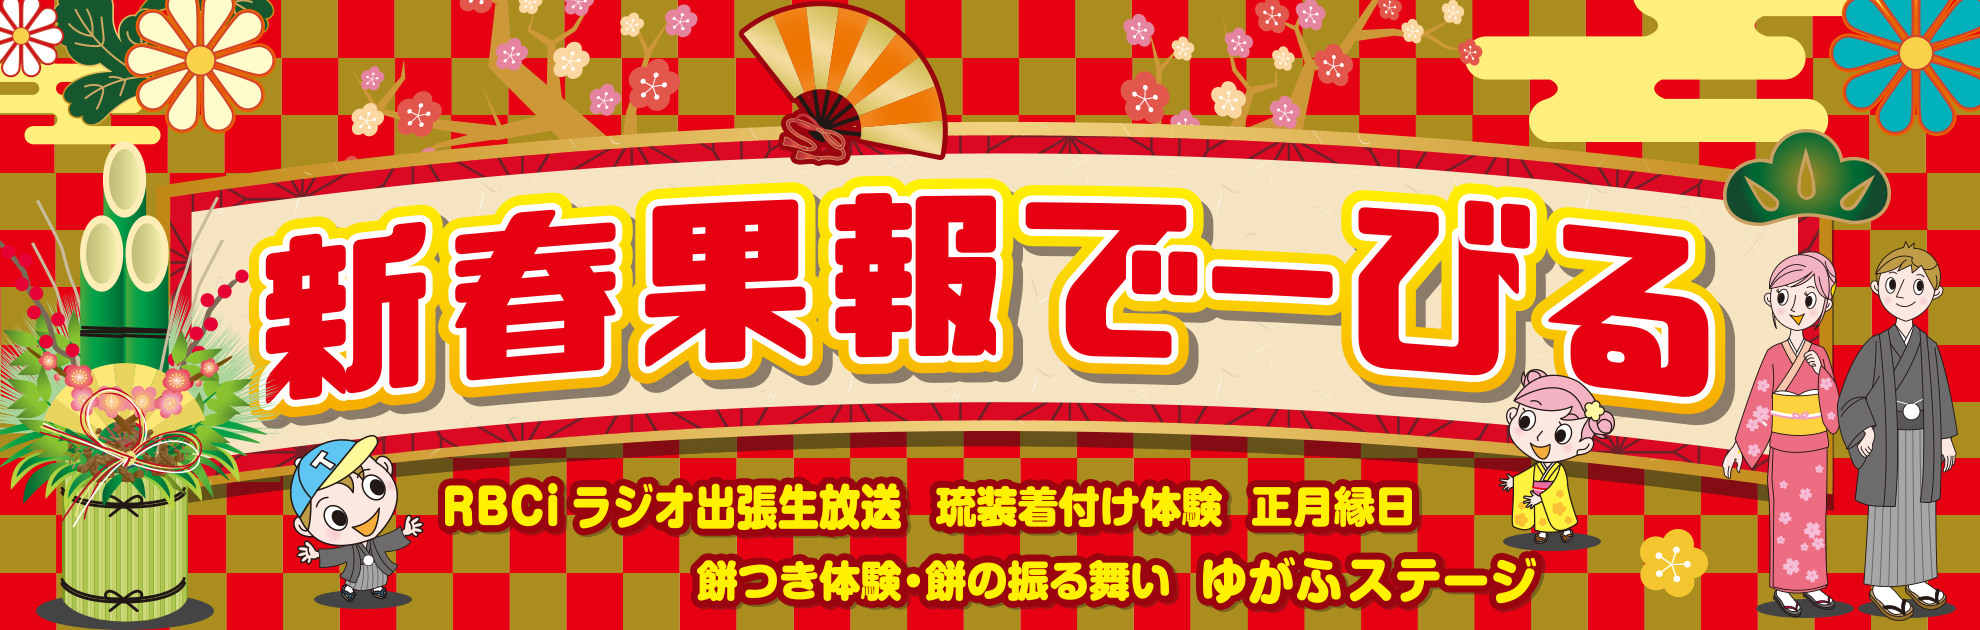 Please spend the luck debiru first three days of a new year in Ocean Expo Park on the Ocean Expo Park New Year!